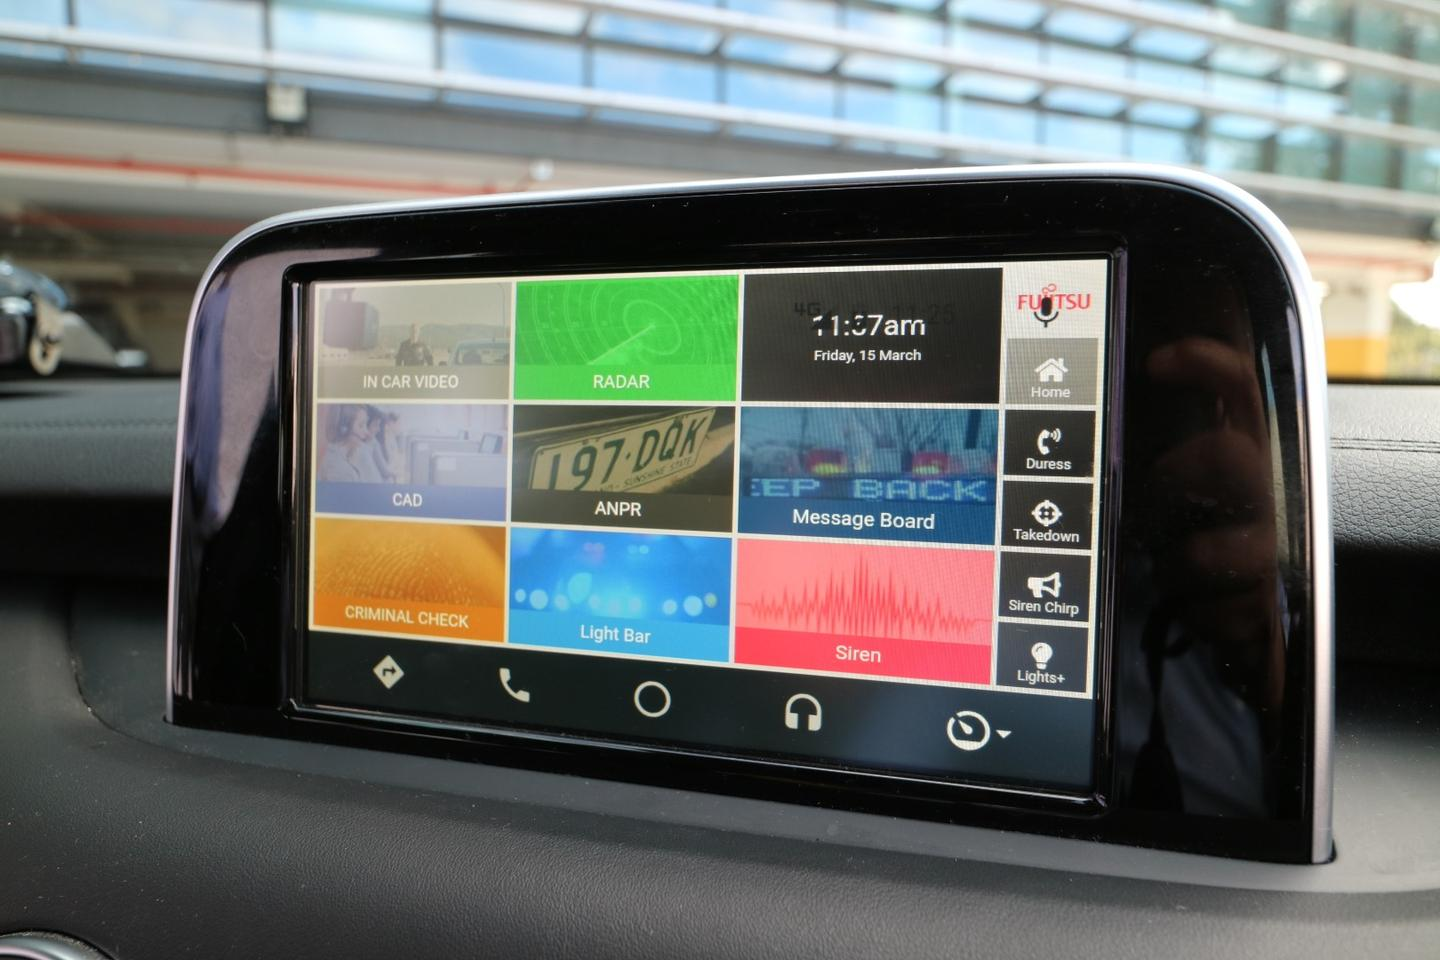 The setup utilizes the car's existing infotainment screen to present the sort of data that would ordinarily be presented on a separate laptop